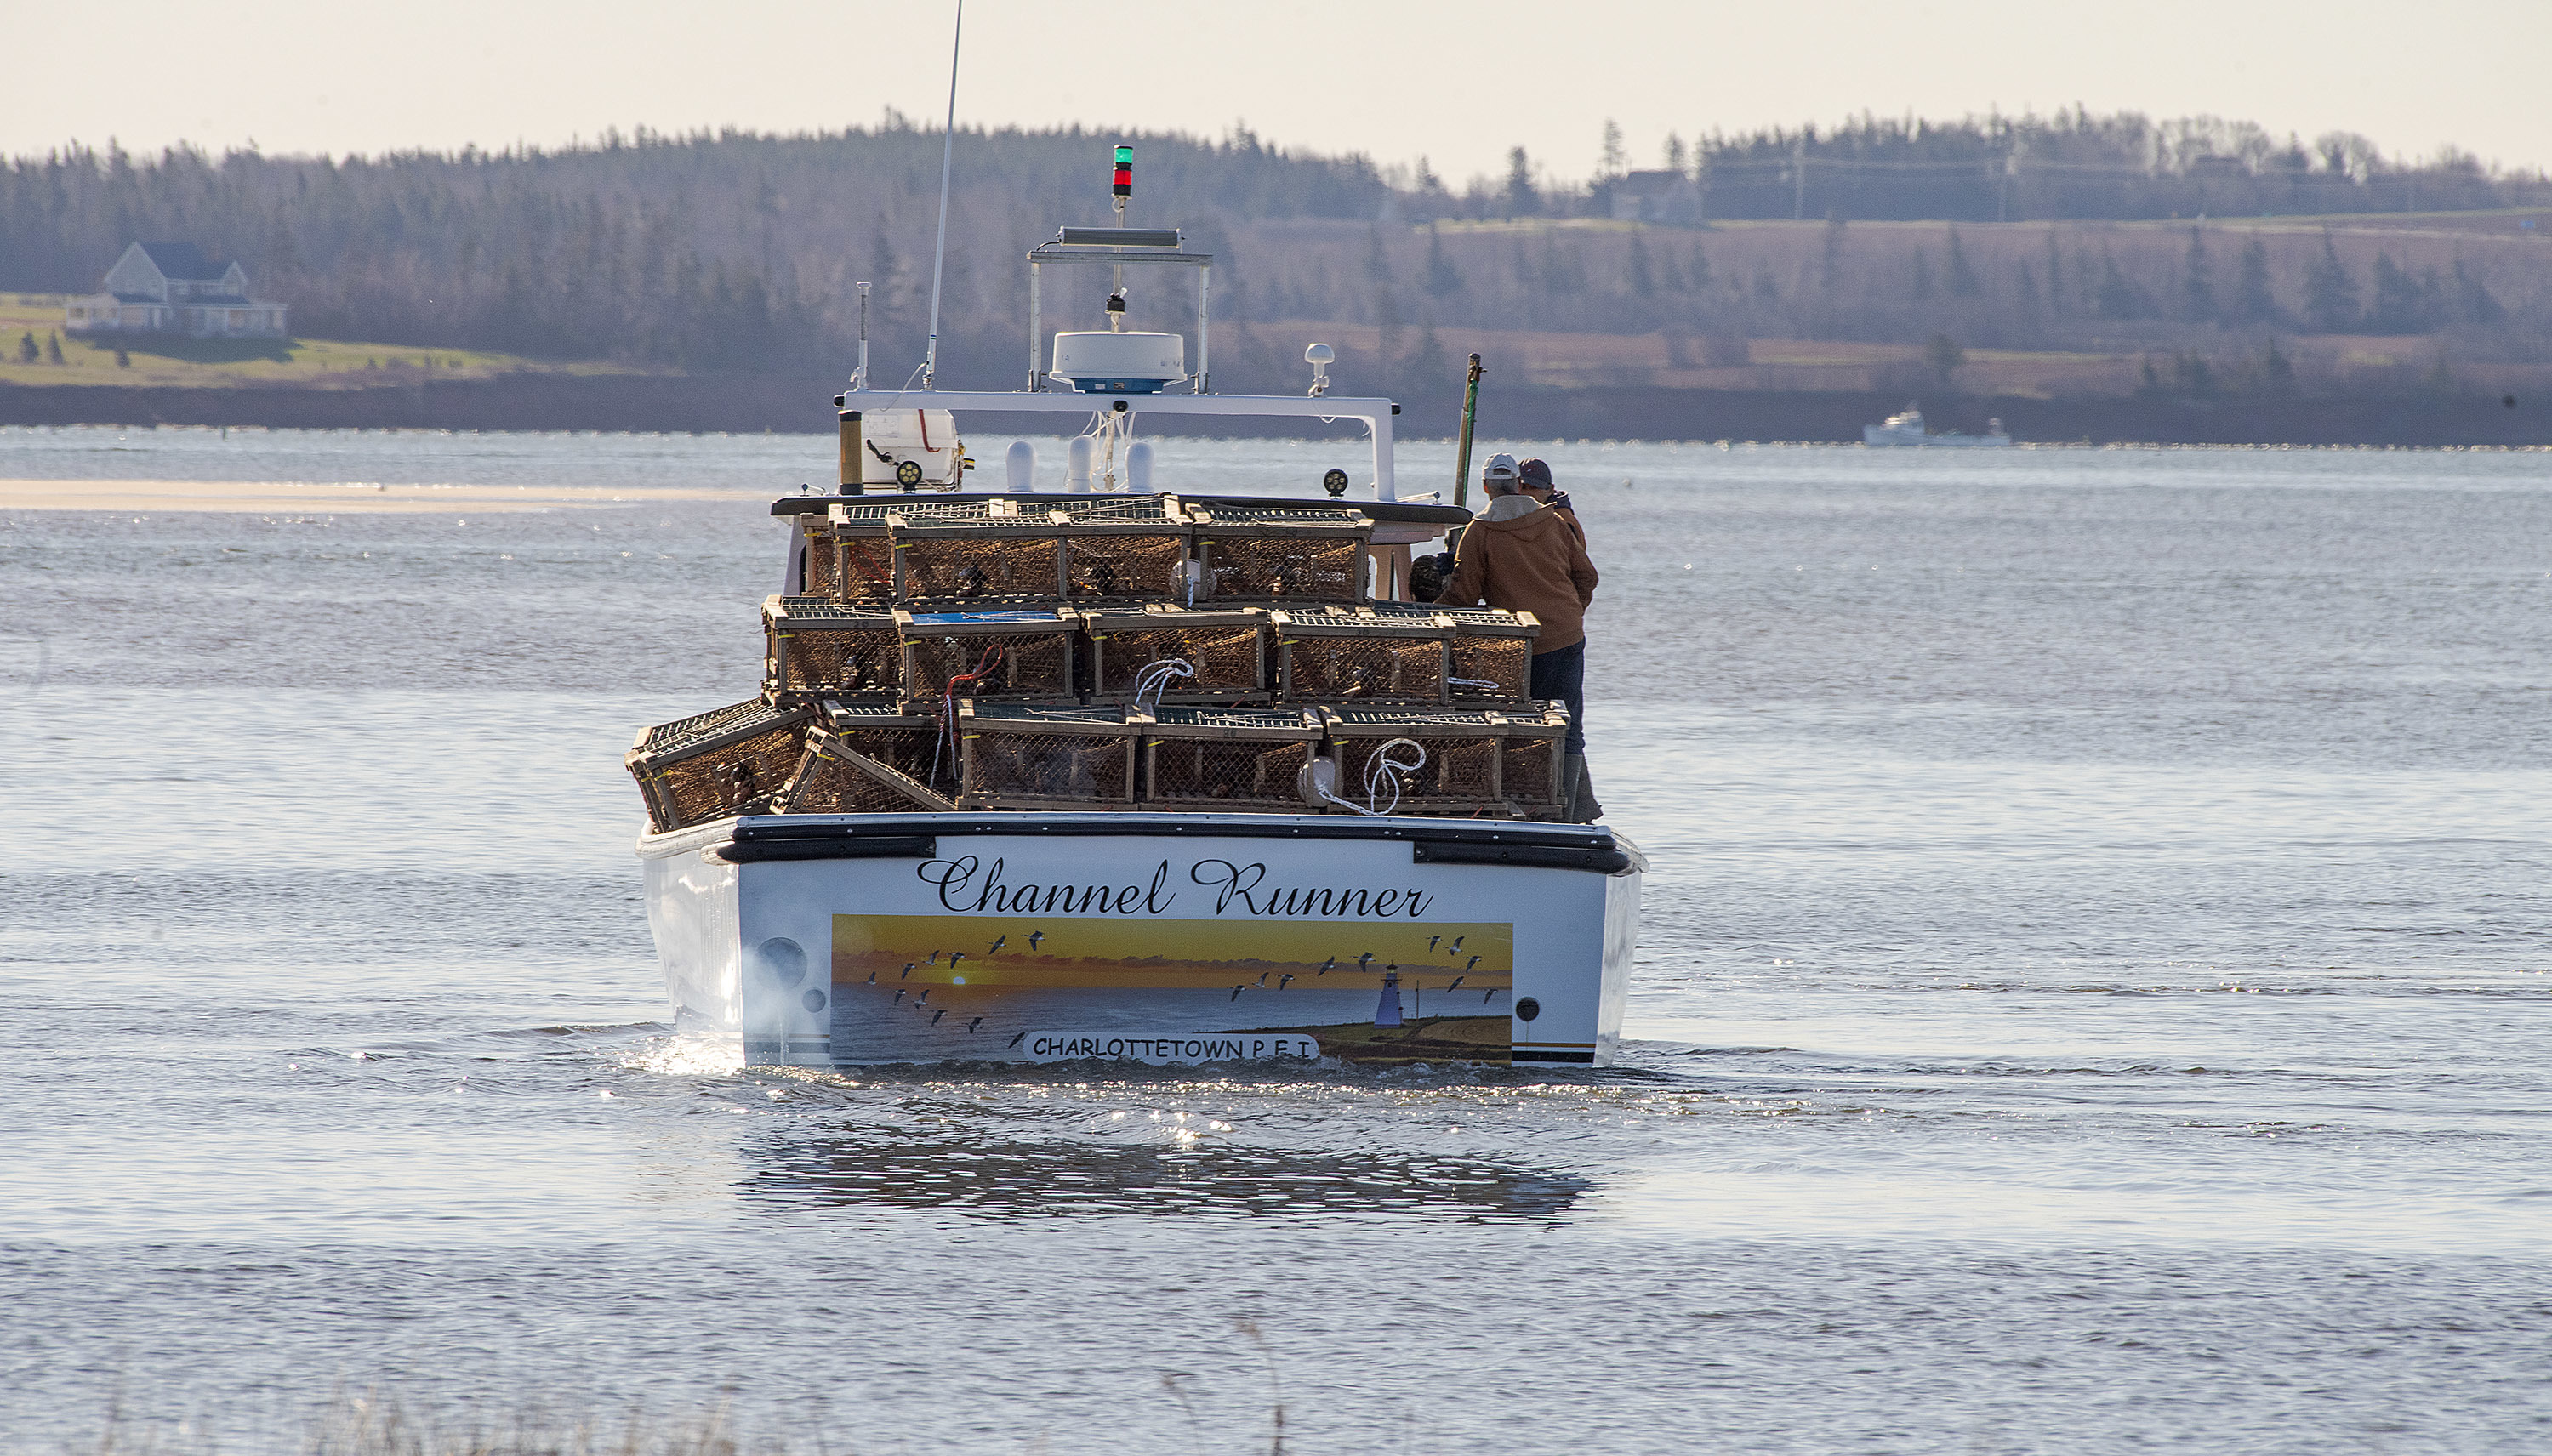 The Channel Runner, loaded with approximately 150 lobster traps, heads toward the Malpeque Harbour channel. (Brian McInnis/CBC)